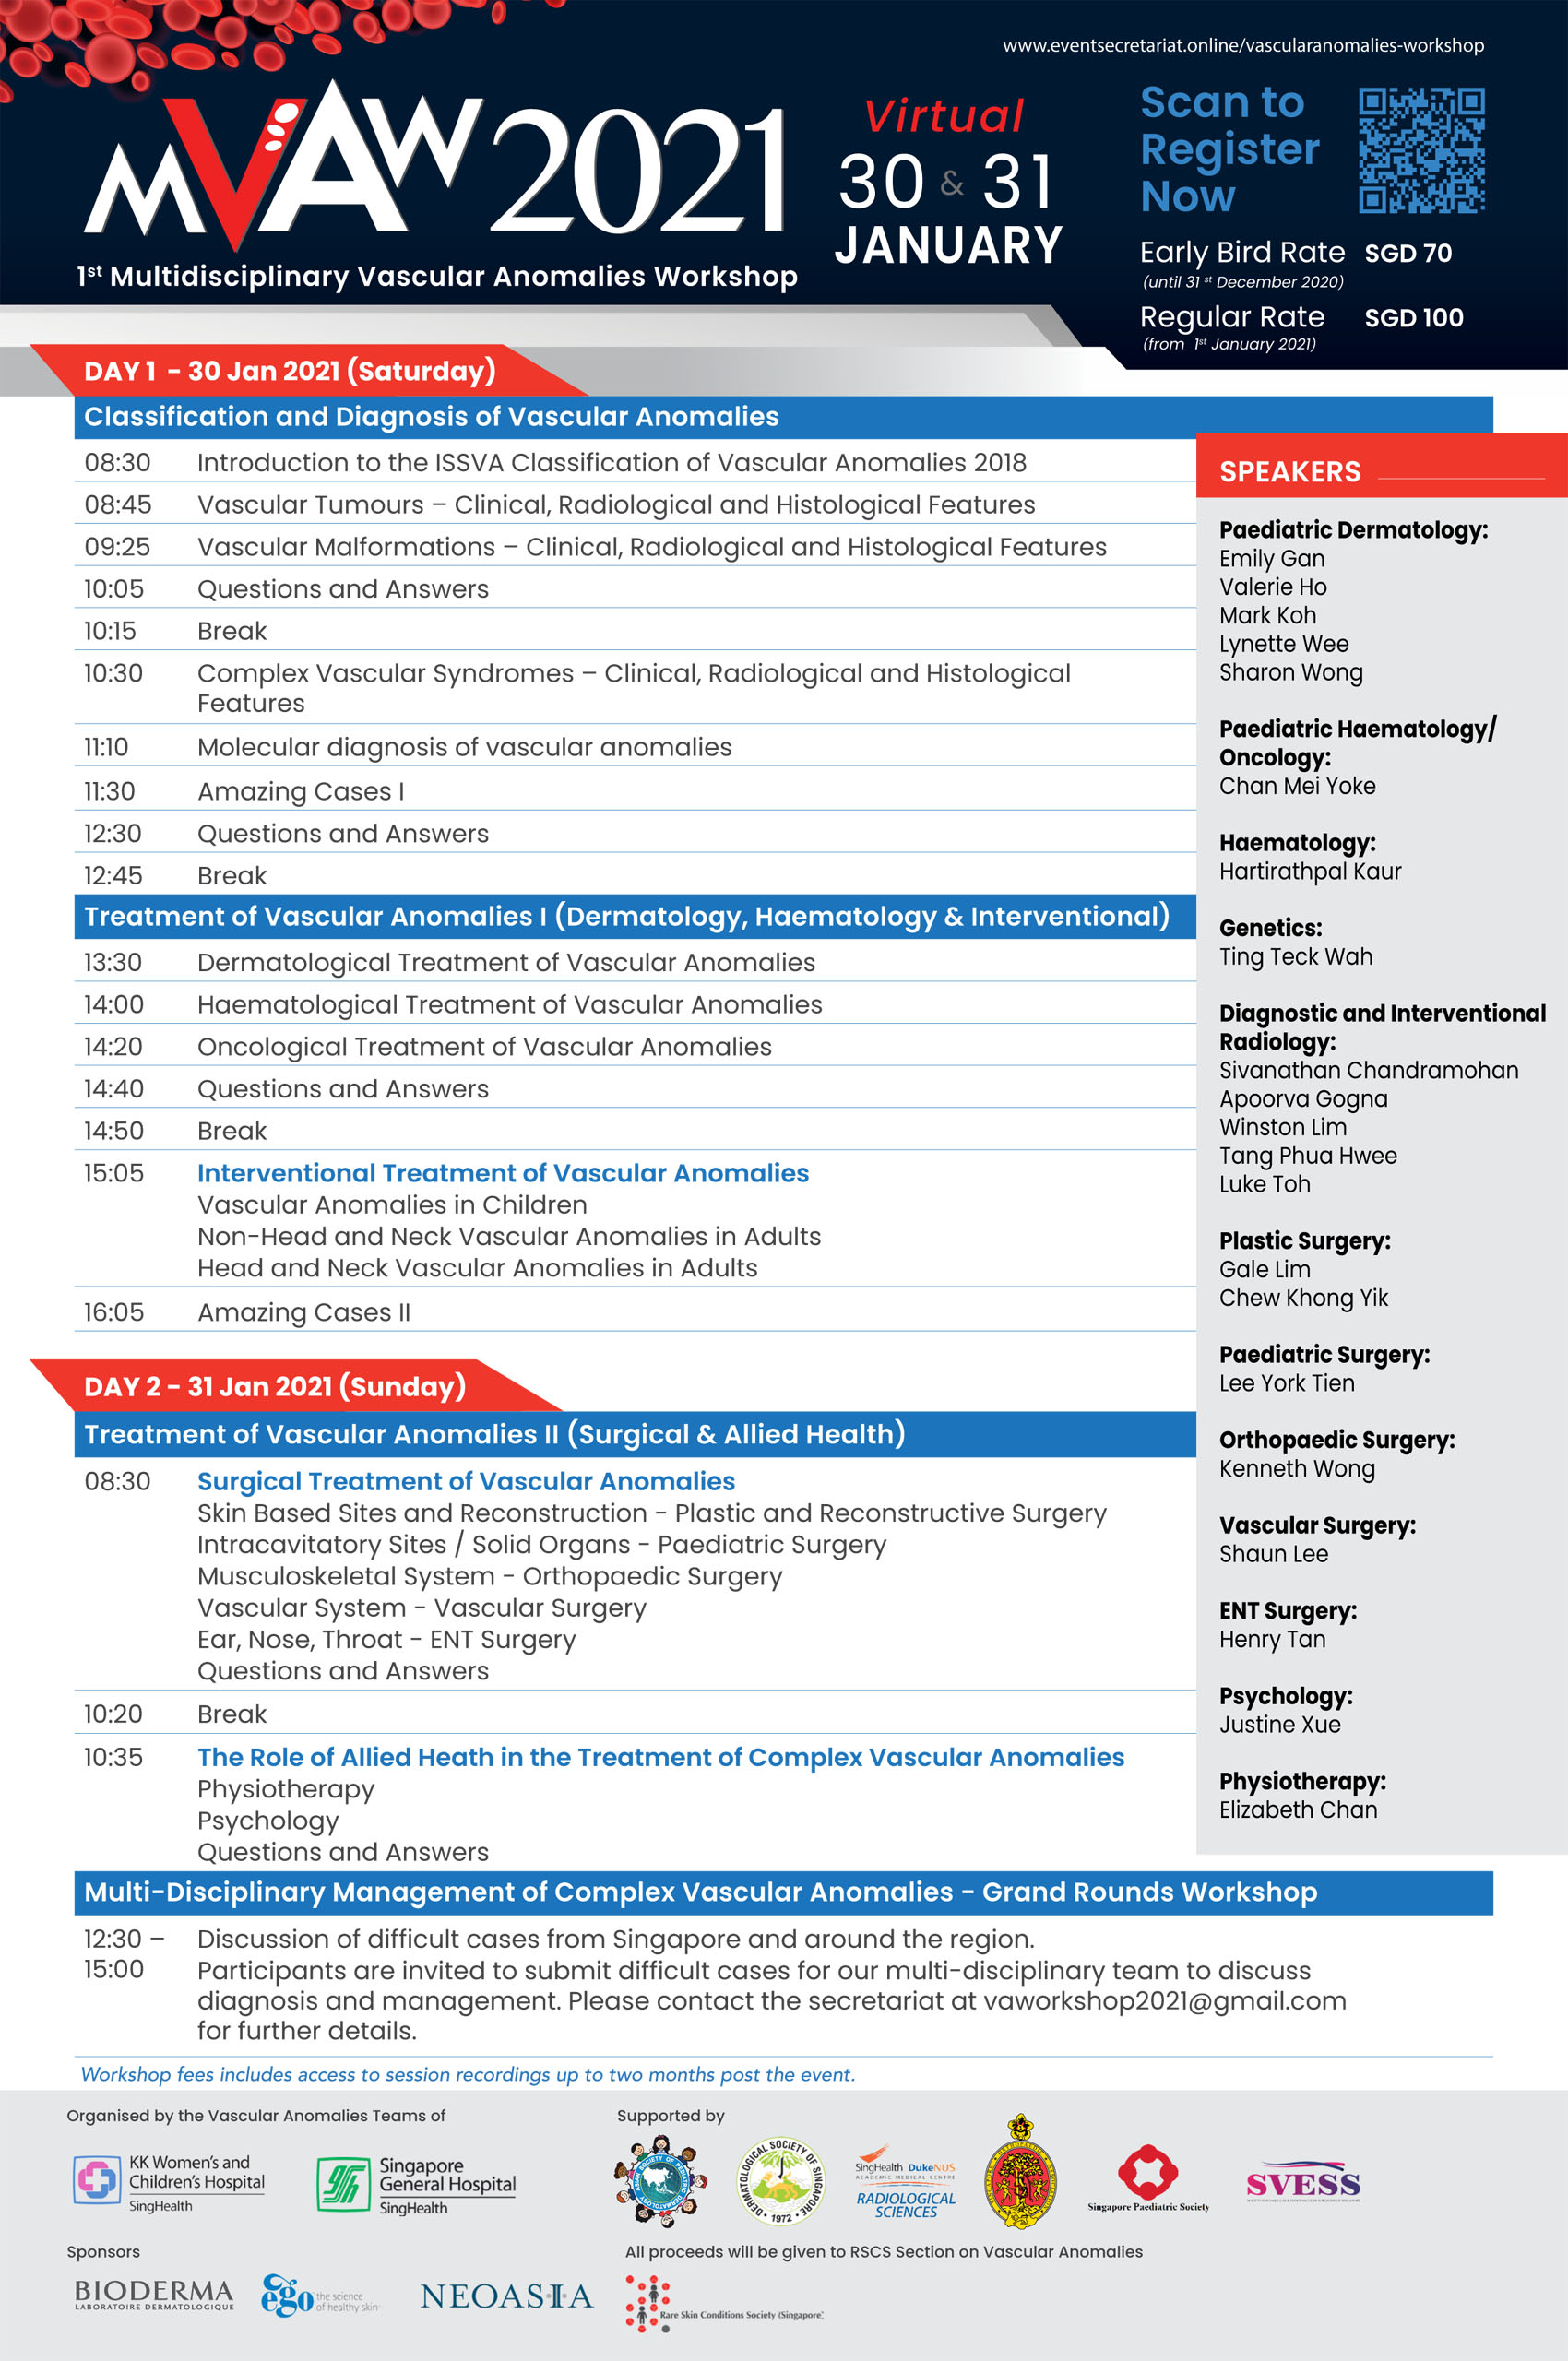 1st Interdisciplinary Vascular Anomalies Workshop @ Virtual